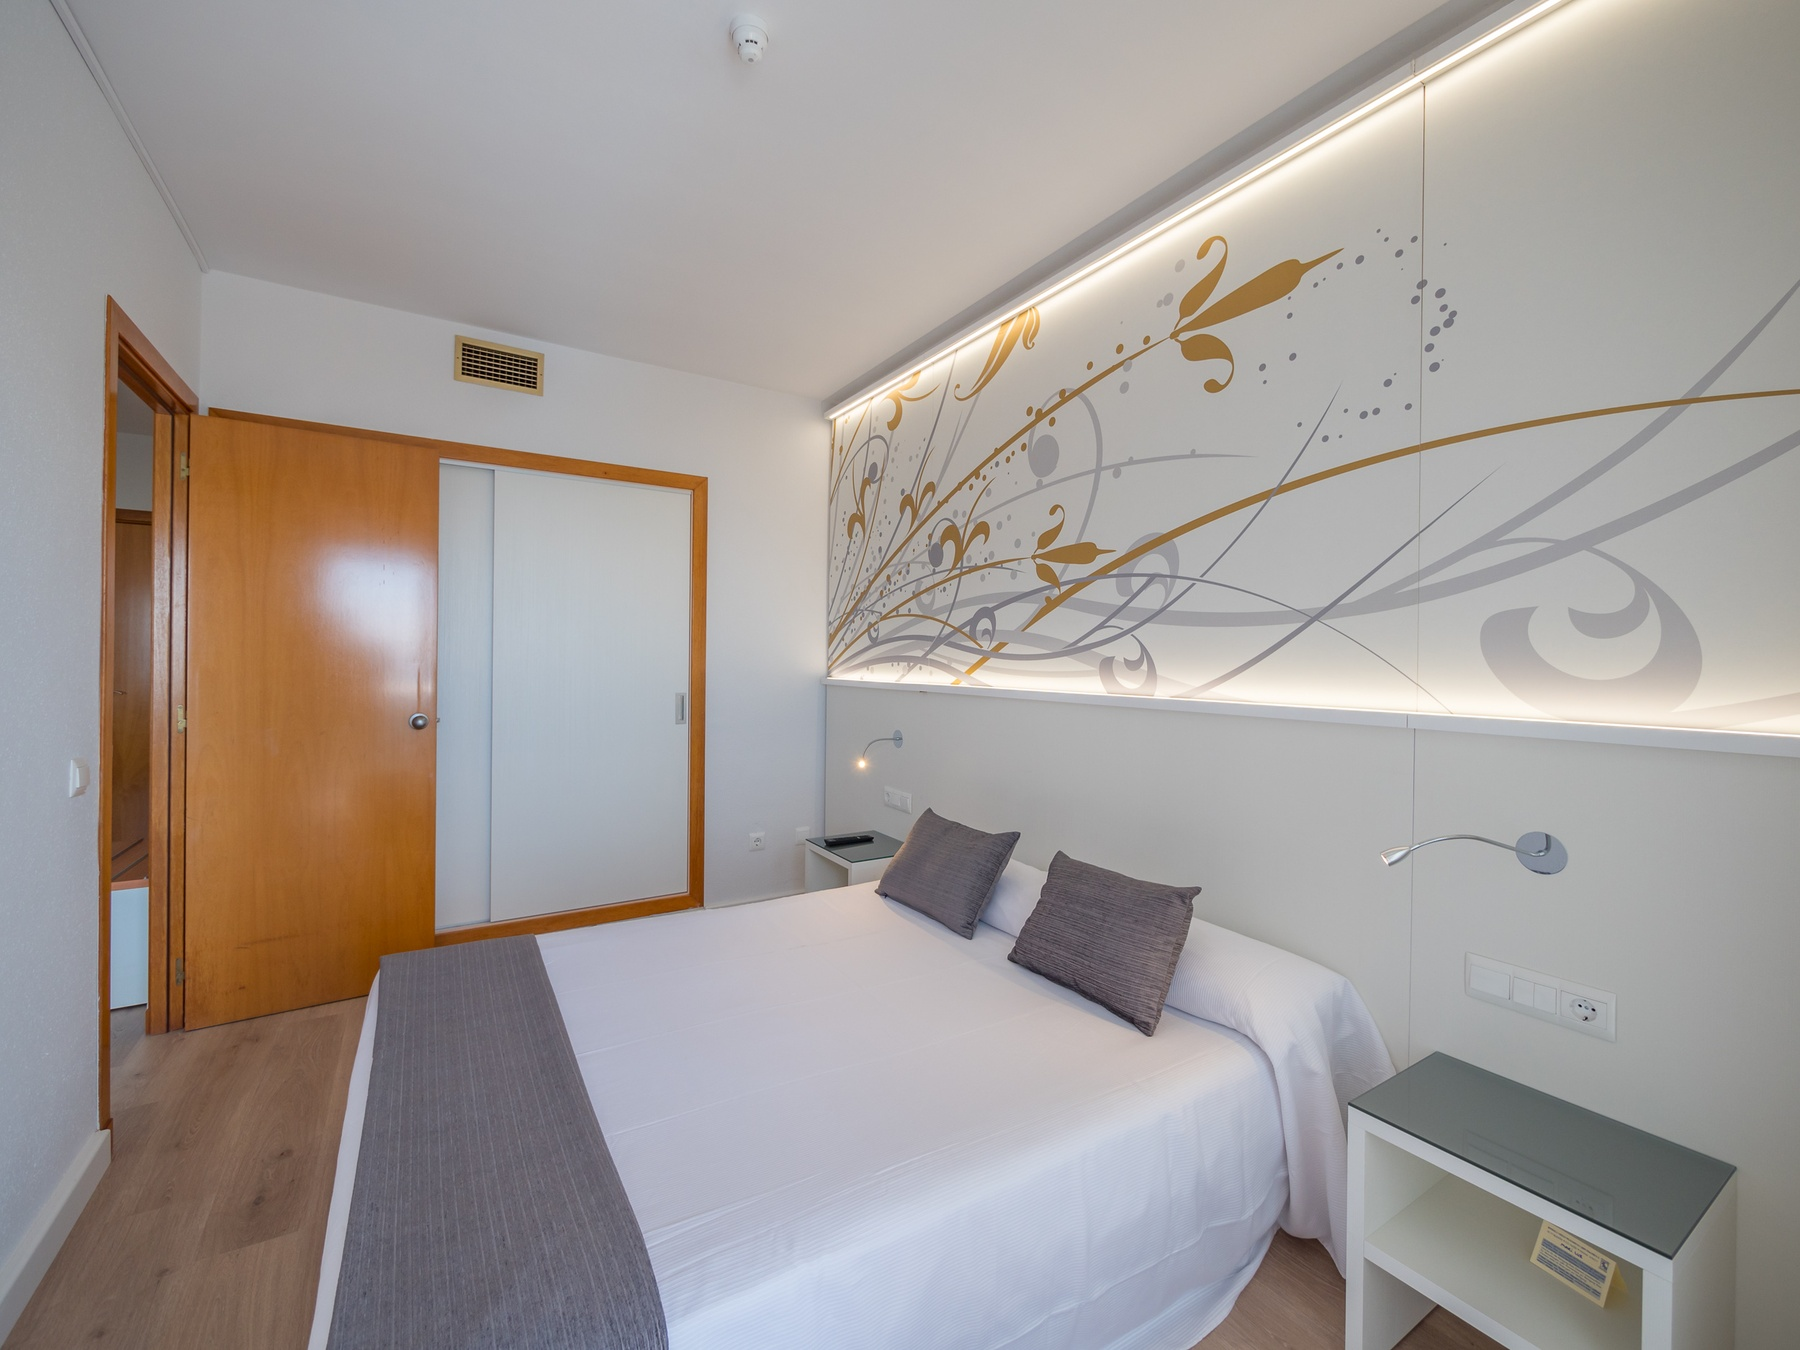 hotels beach family rooms Costa Barcelona swimming pool